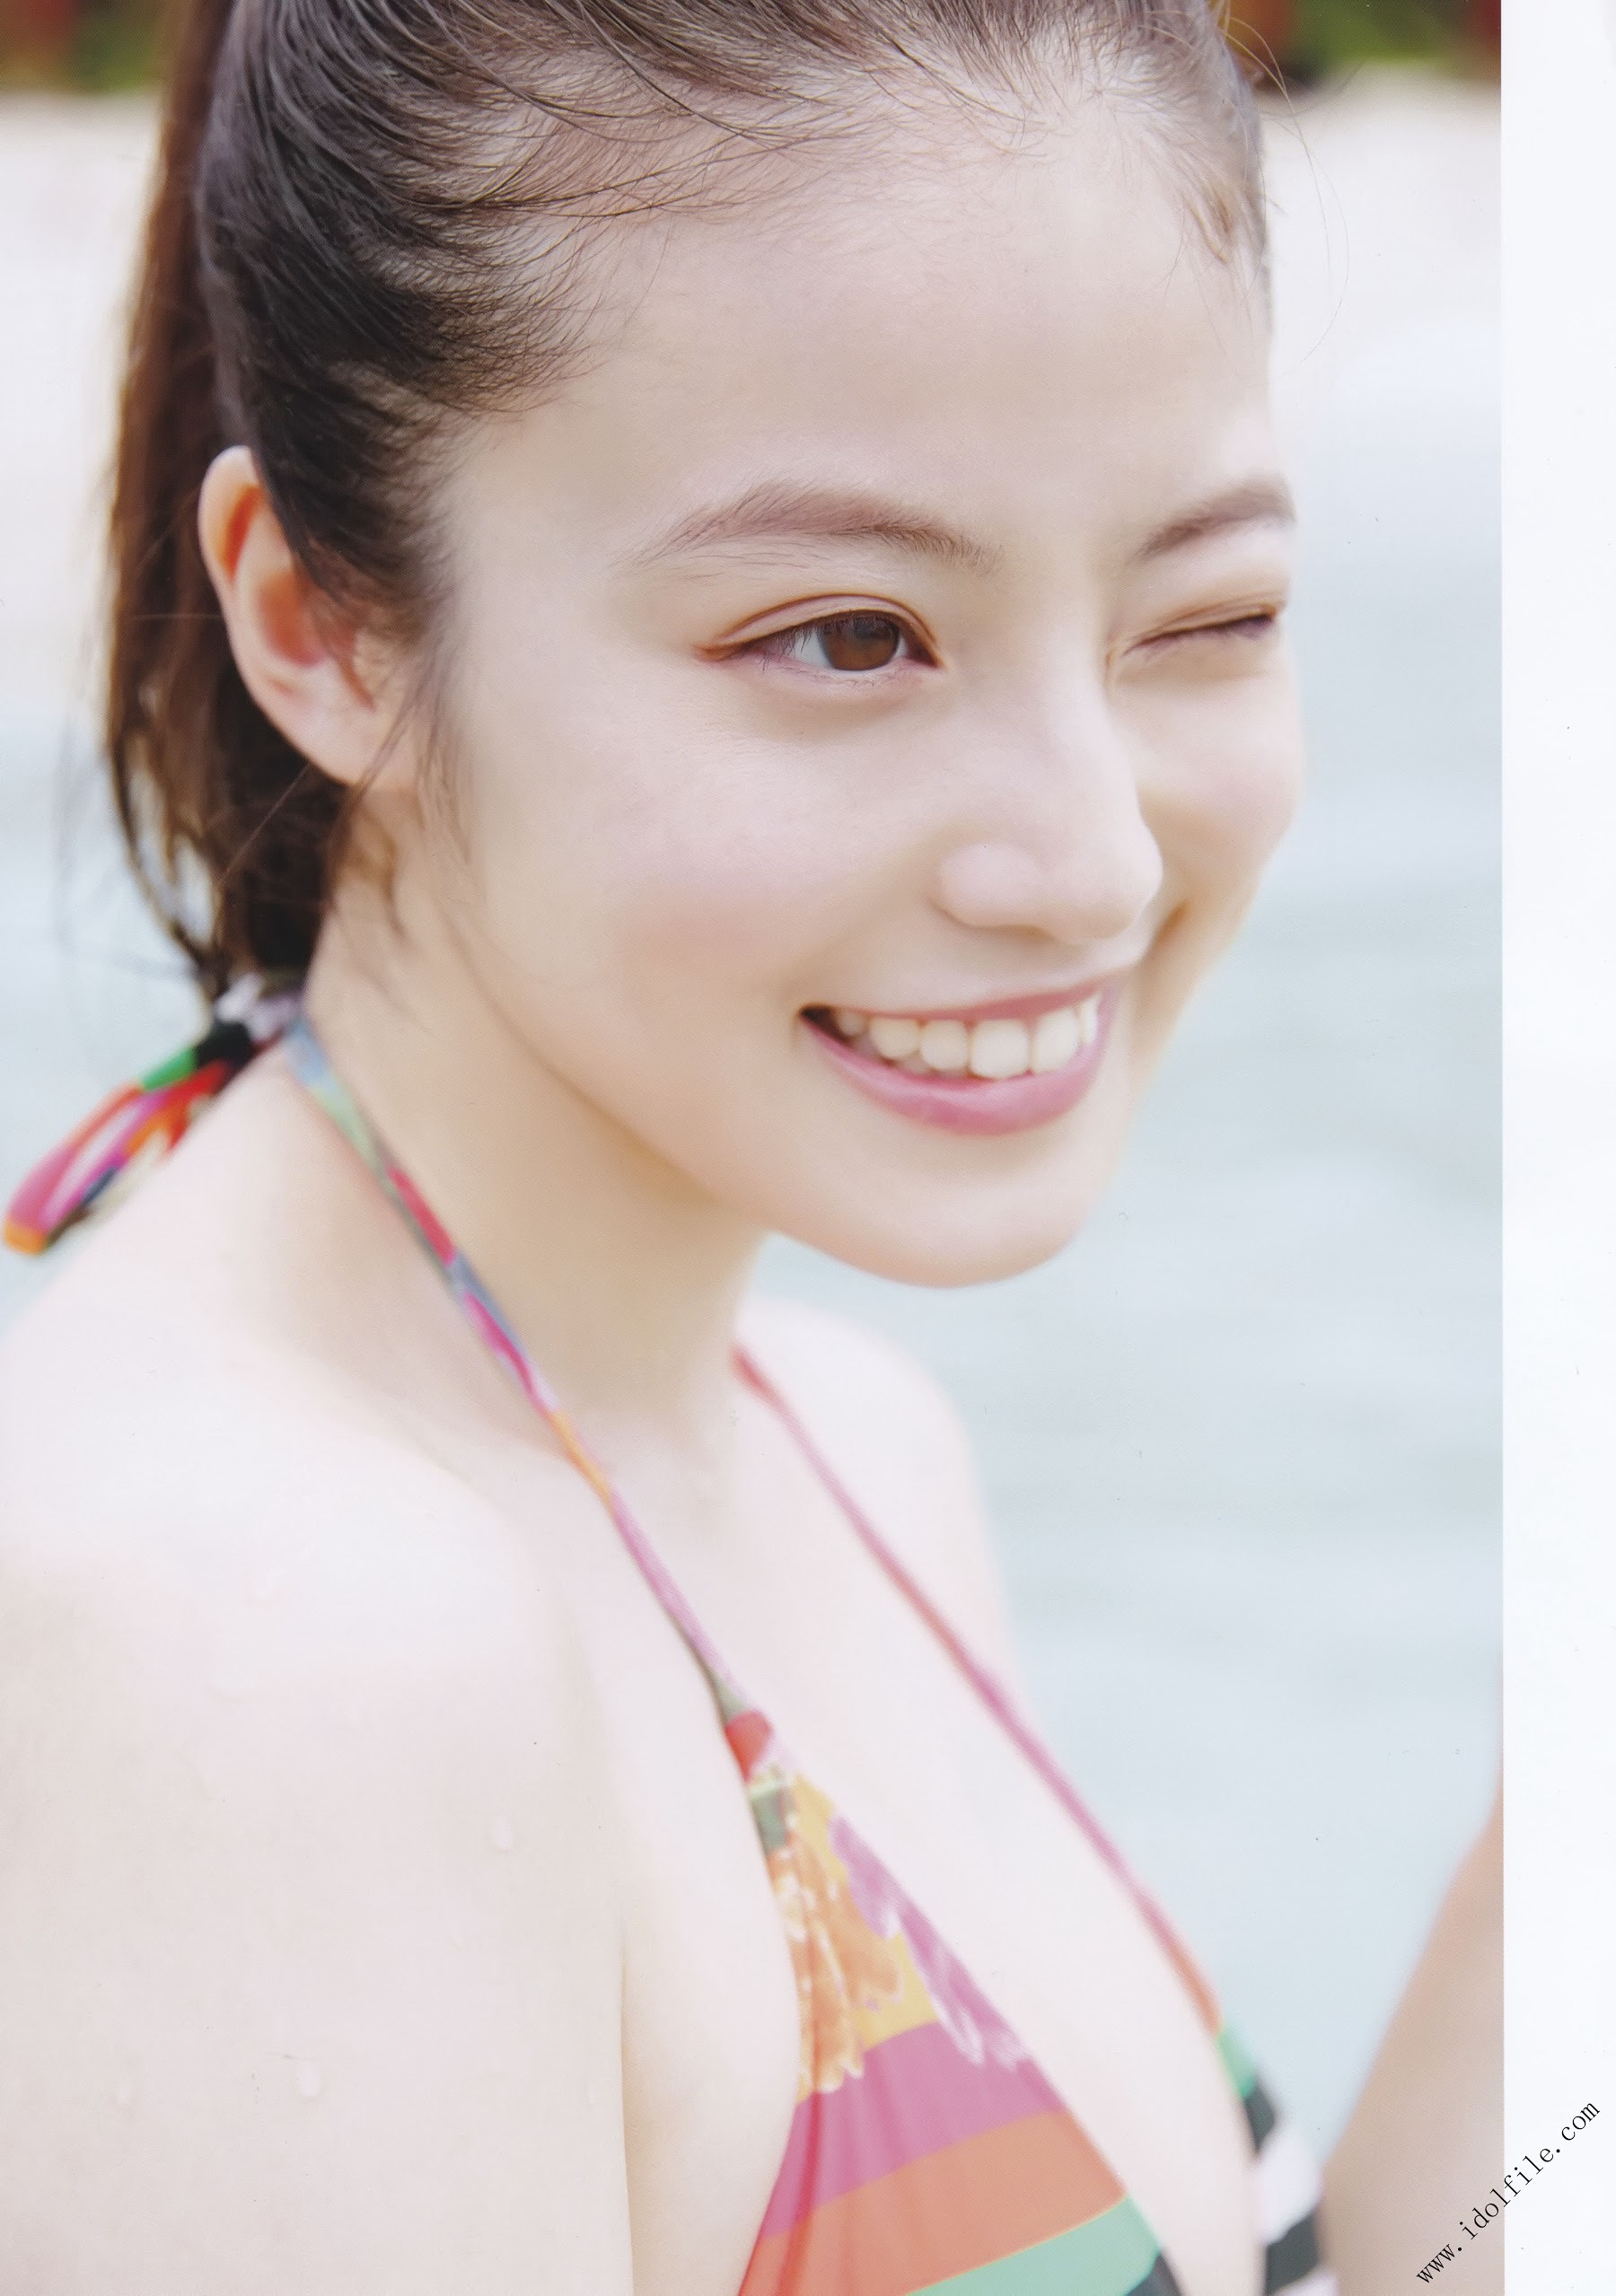 Pretty and beautiful, 22 years old and innocent Moving to the next stage as an actress Mio Imada089